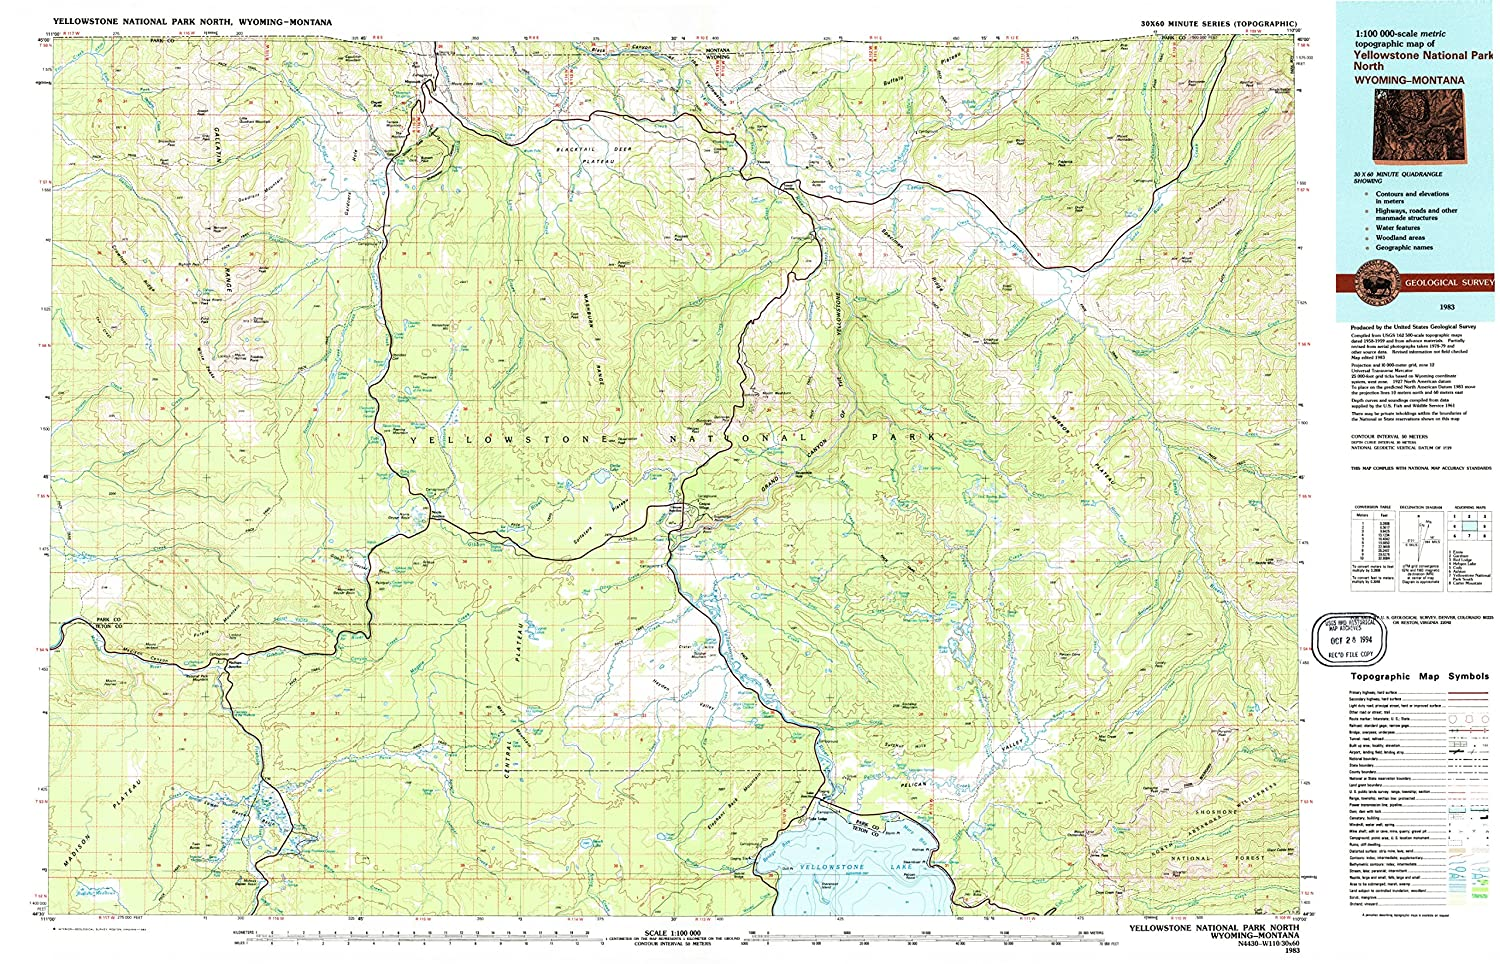 Amazon.com : Yellowstone National Park North WY topo map, 1:100000 on black hills sd topographic map, mount marcy topographic map, blue ridge parkway topographic map, lamar ranger station yellowstone map, united states topographic map, uinta mountains topographic map, mosquito lake topographic map, el capitan topographic map, firehole river topographic map, west yellowstone topographic map, seattle topographic map, rock river topographic map, wind river range topographic map, willamette river topographic map, montana topographic map, black hills national forest topographic map, mount baker topographic map, boise topographic map, front range topographic map, redwood national park topographic map,